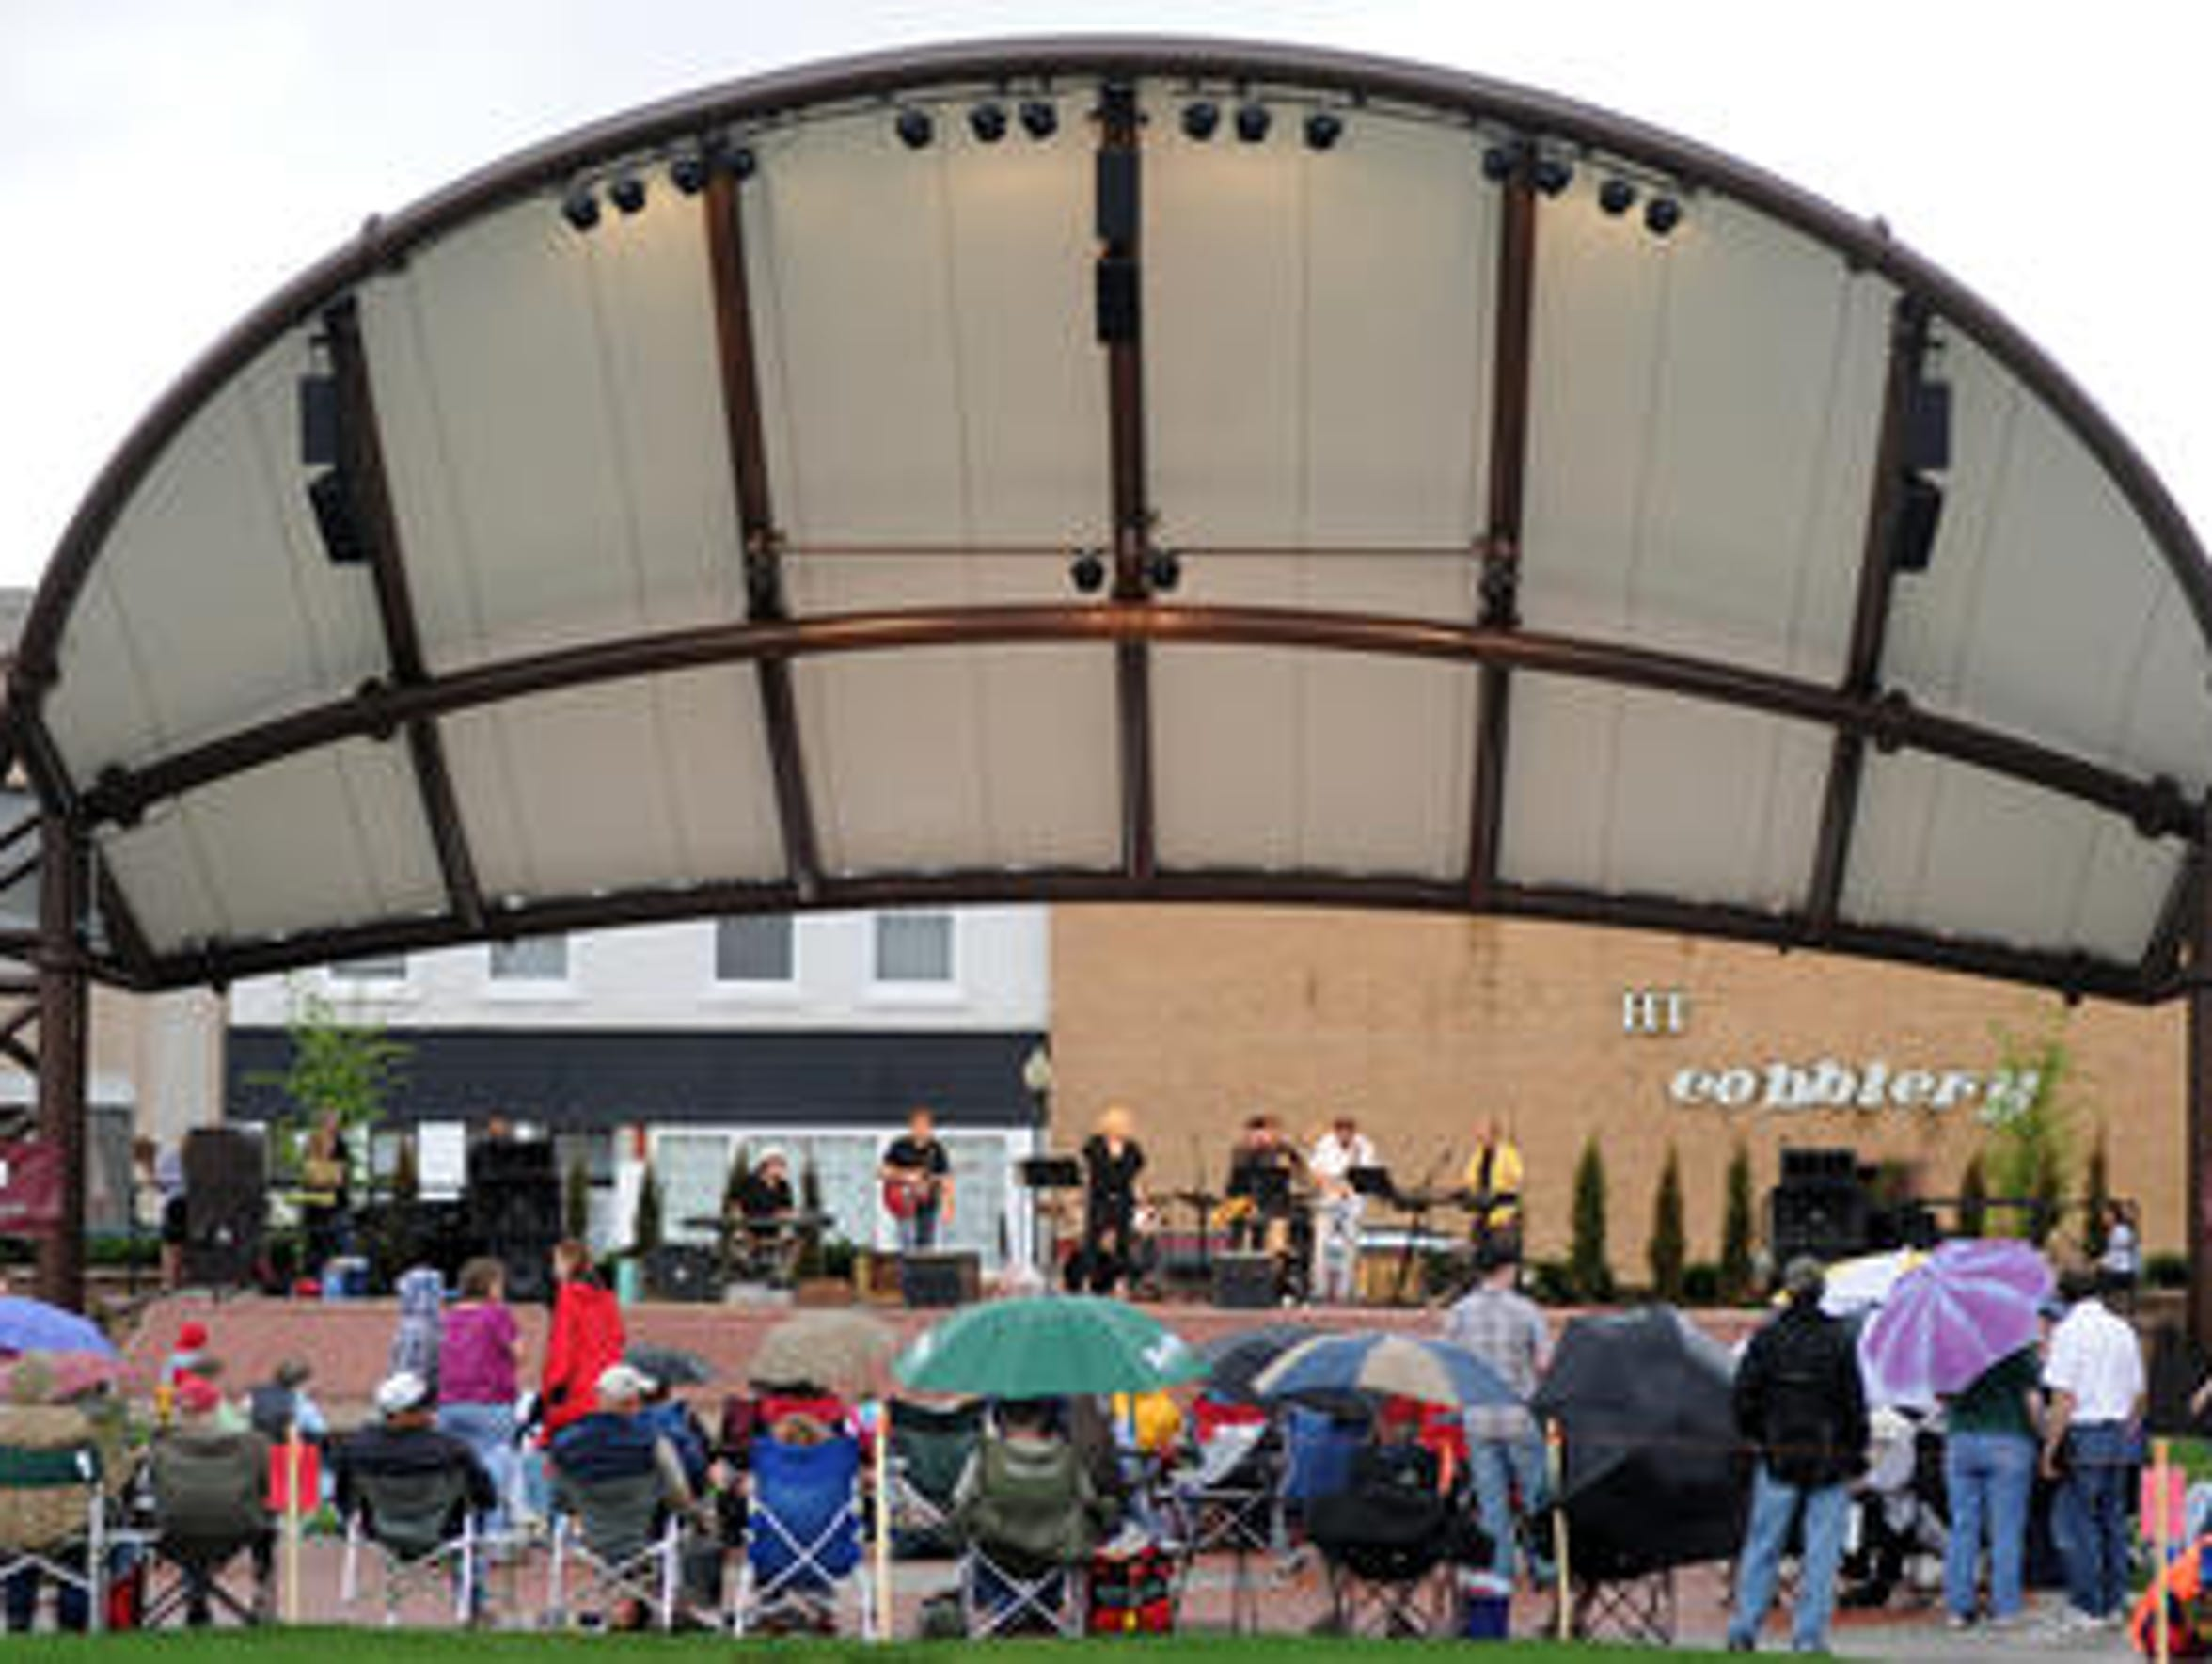 Johnny Altenburgh & The Mo-Tones play at a Concerts